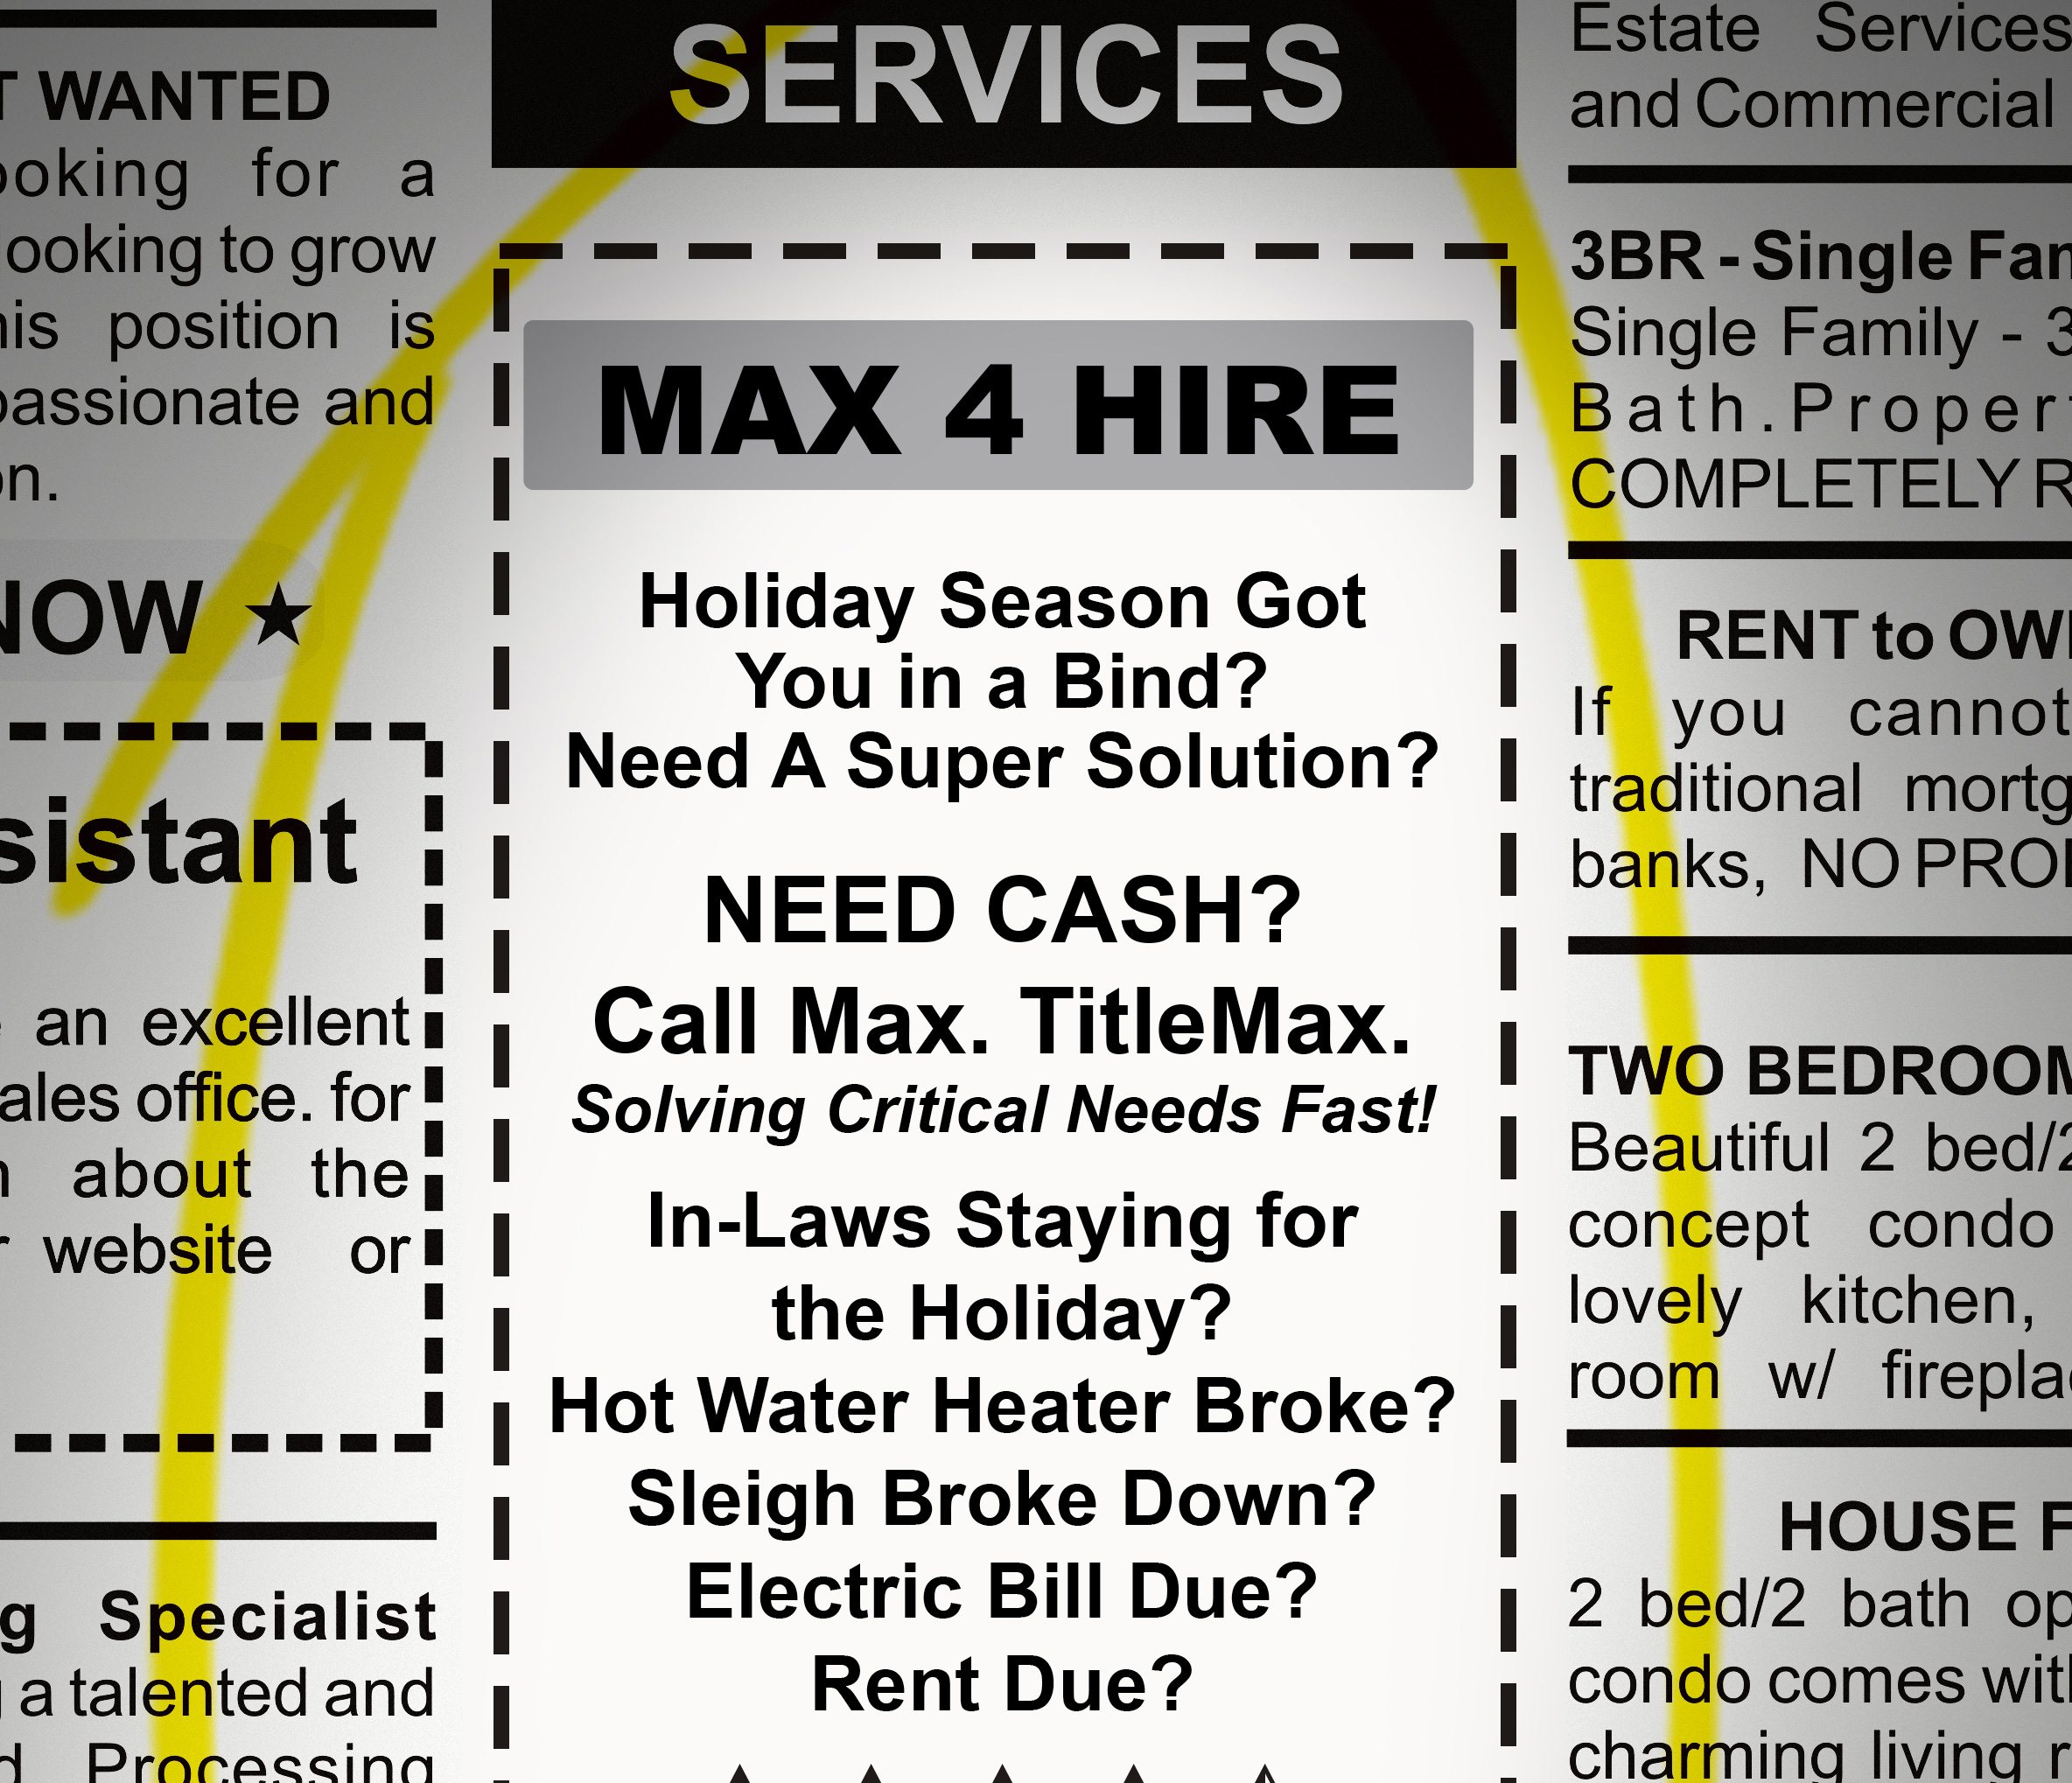 Max 4 Hire! Holiday Season Got You in a Bind? Need a Super Solution?